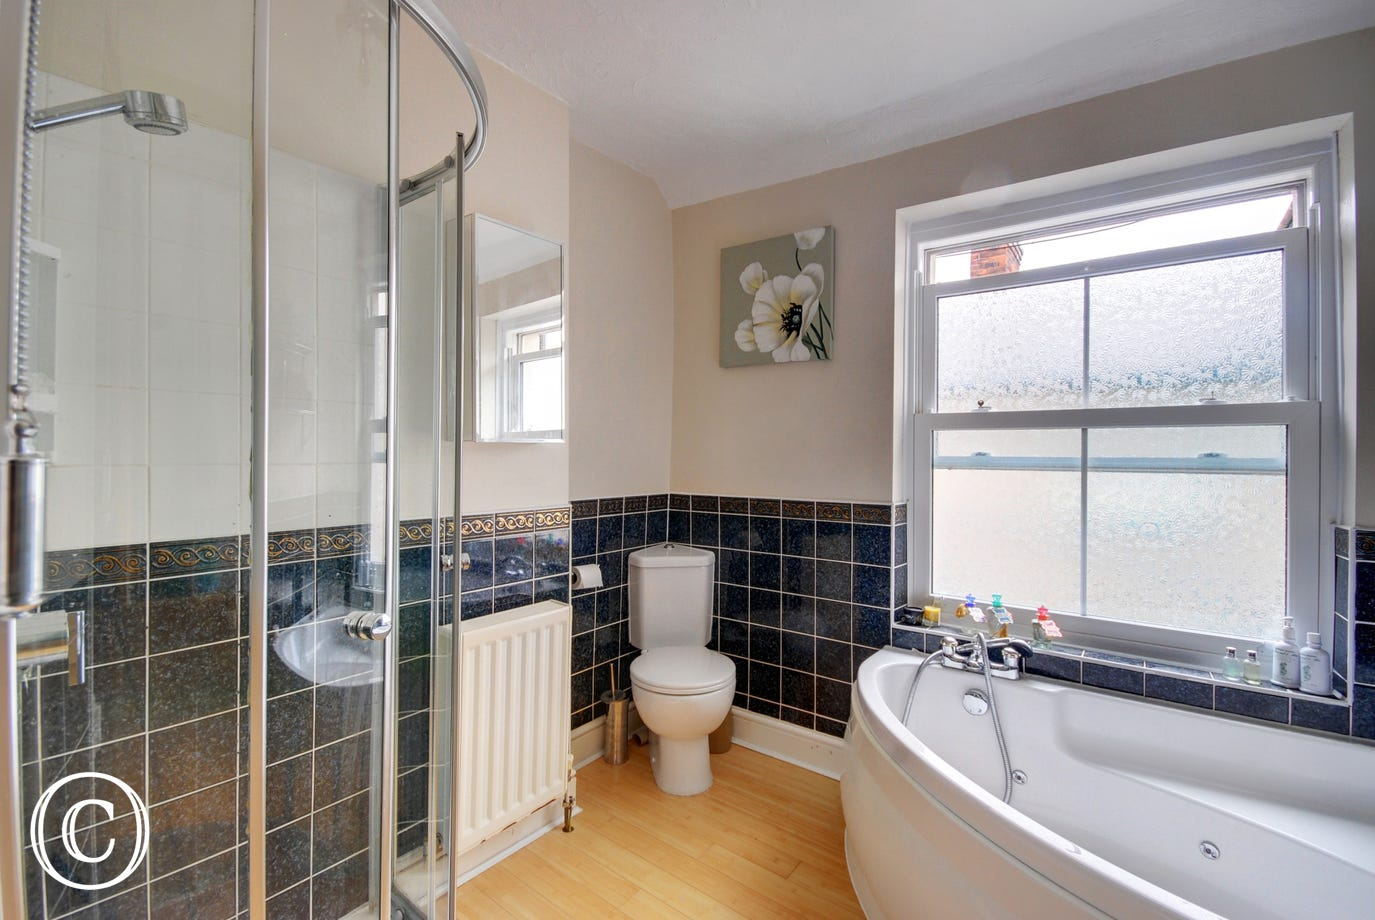 Family bathroom with bath and a separate shower cubicle